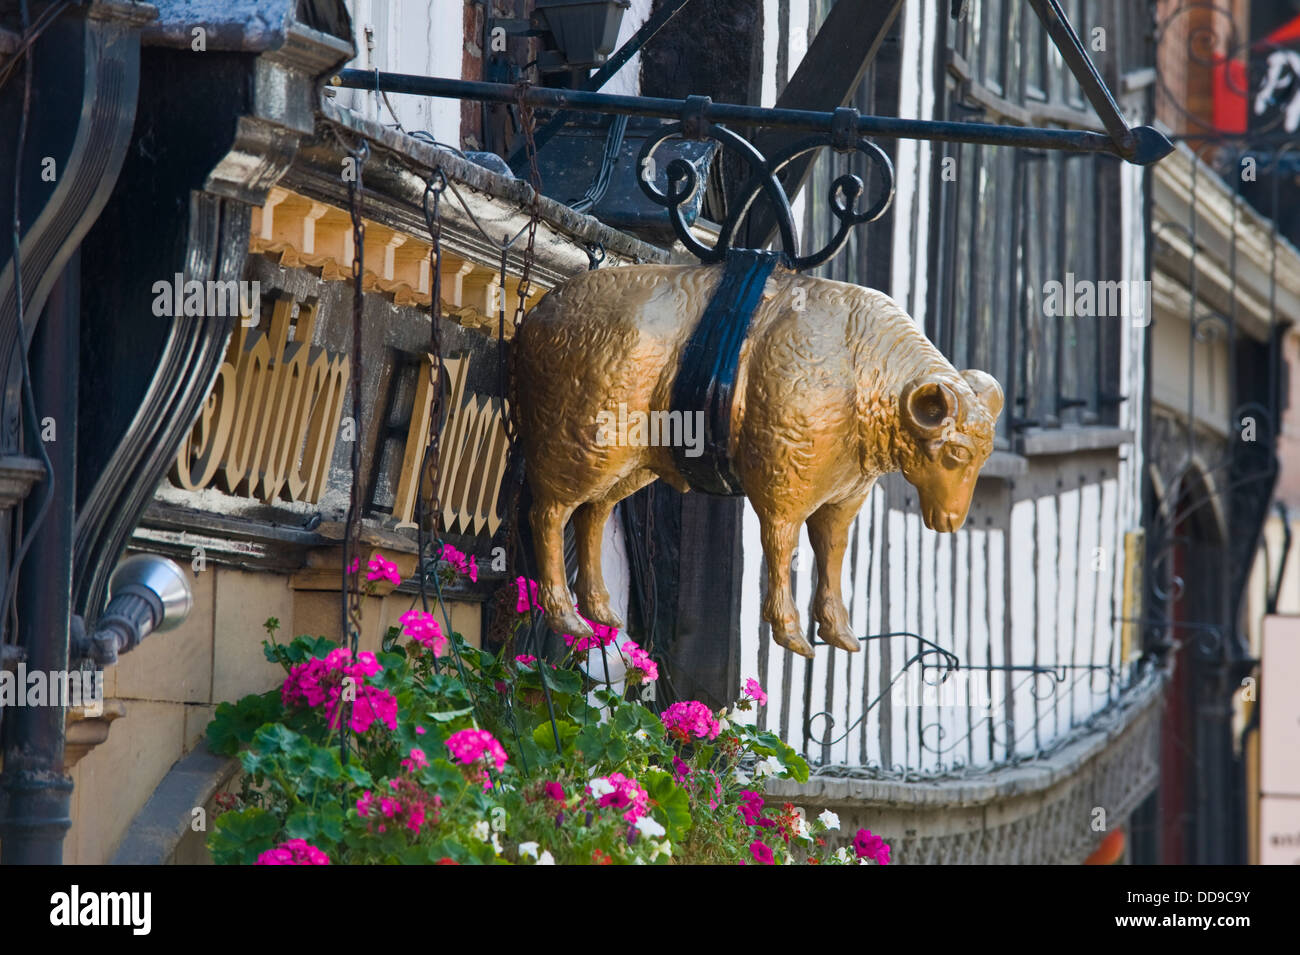 Exterior of the Golden Fleece pub in the city centre of York North Yorkshire England UK - Stock Image